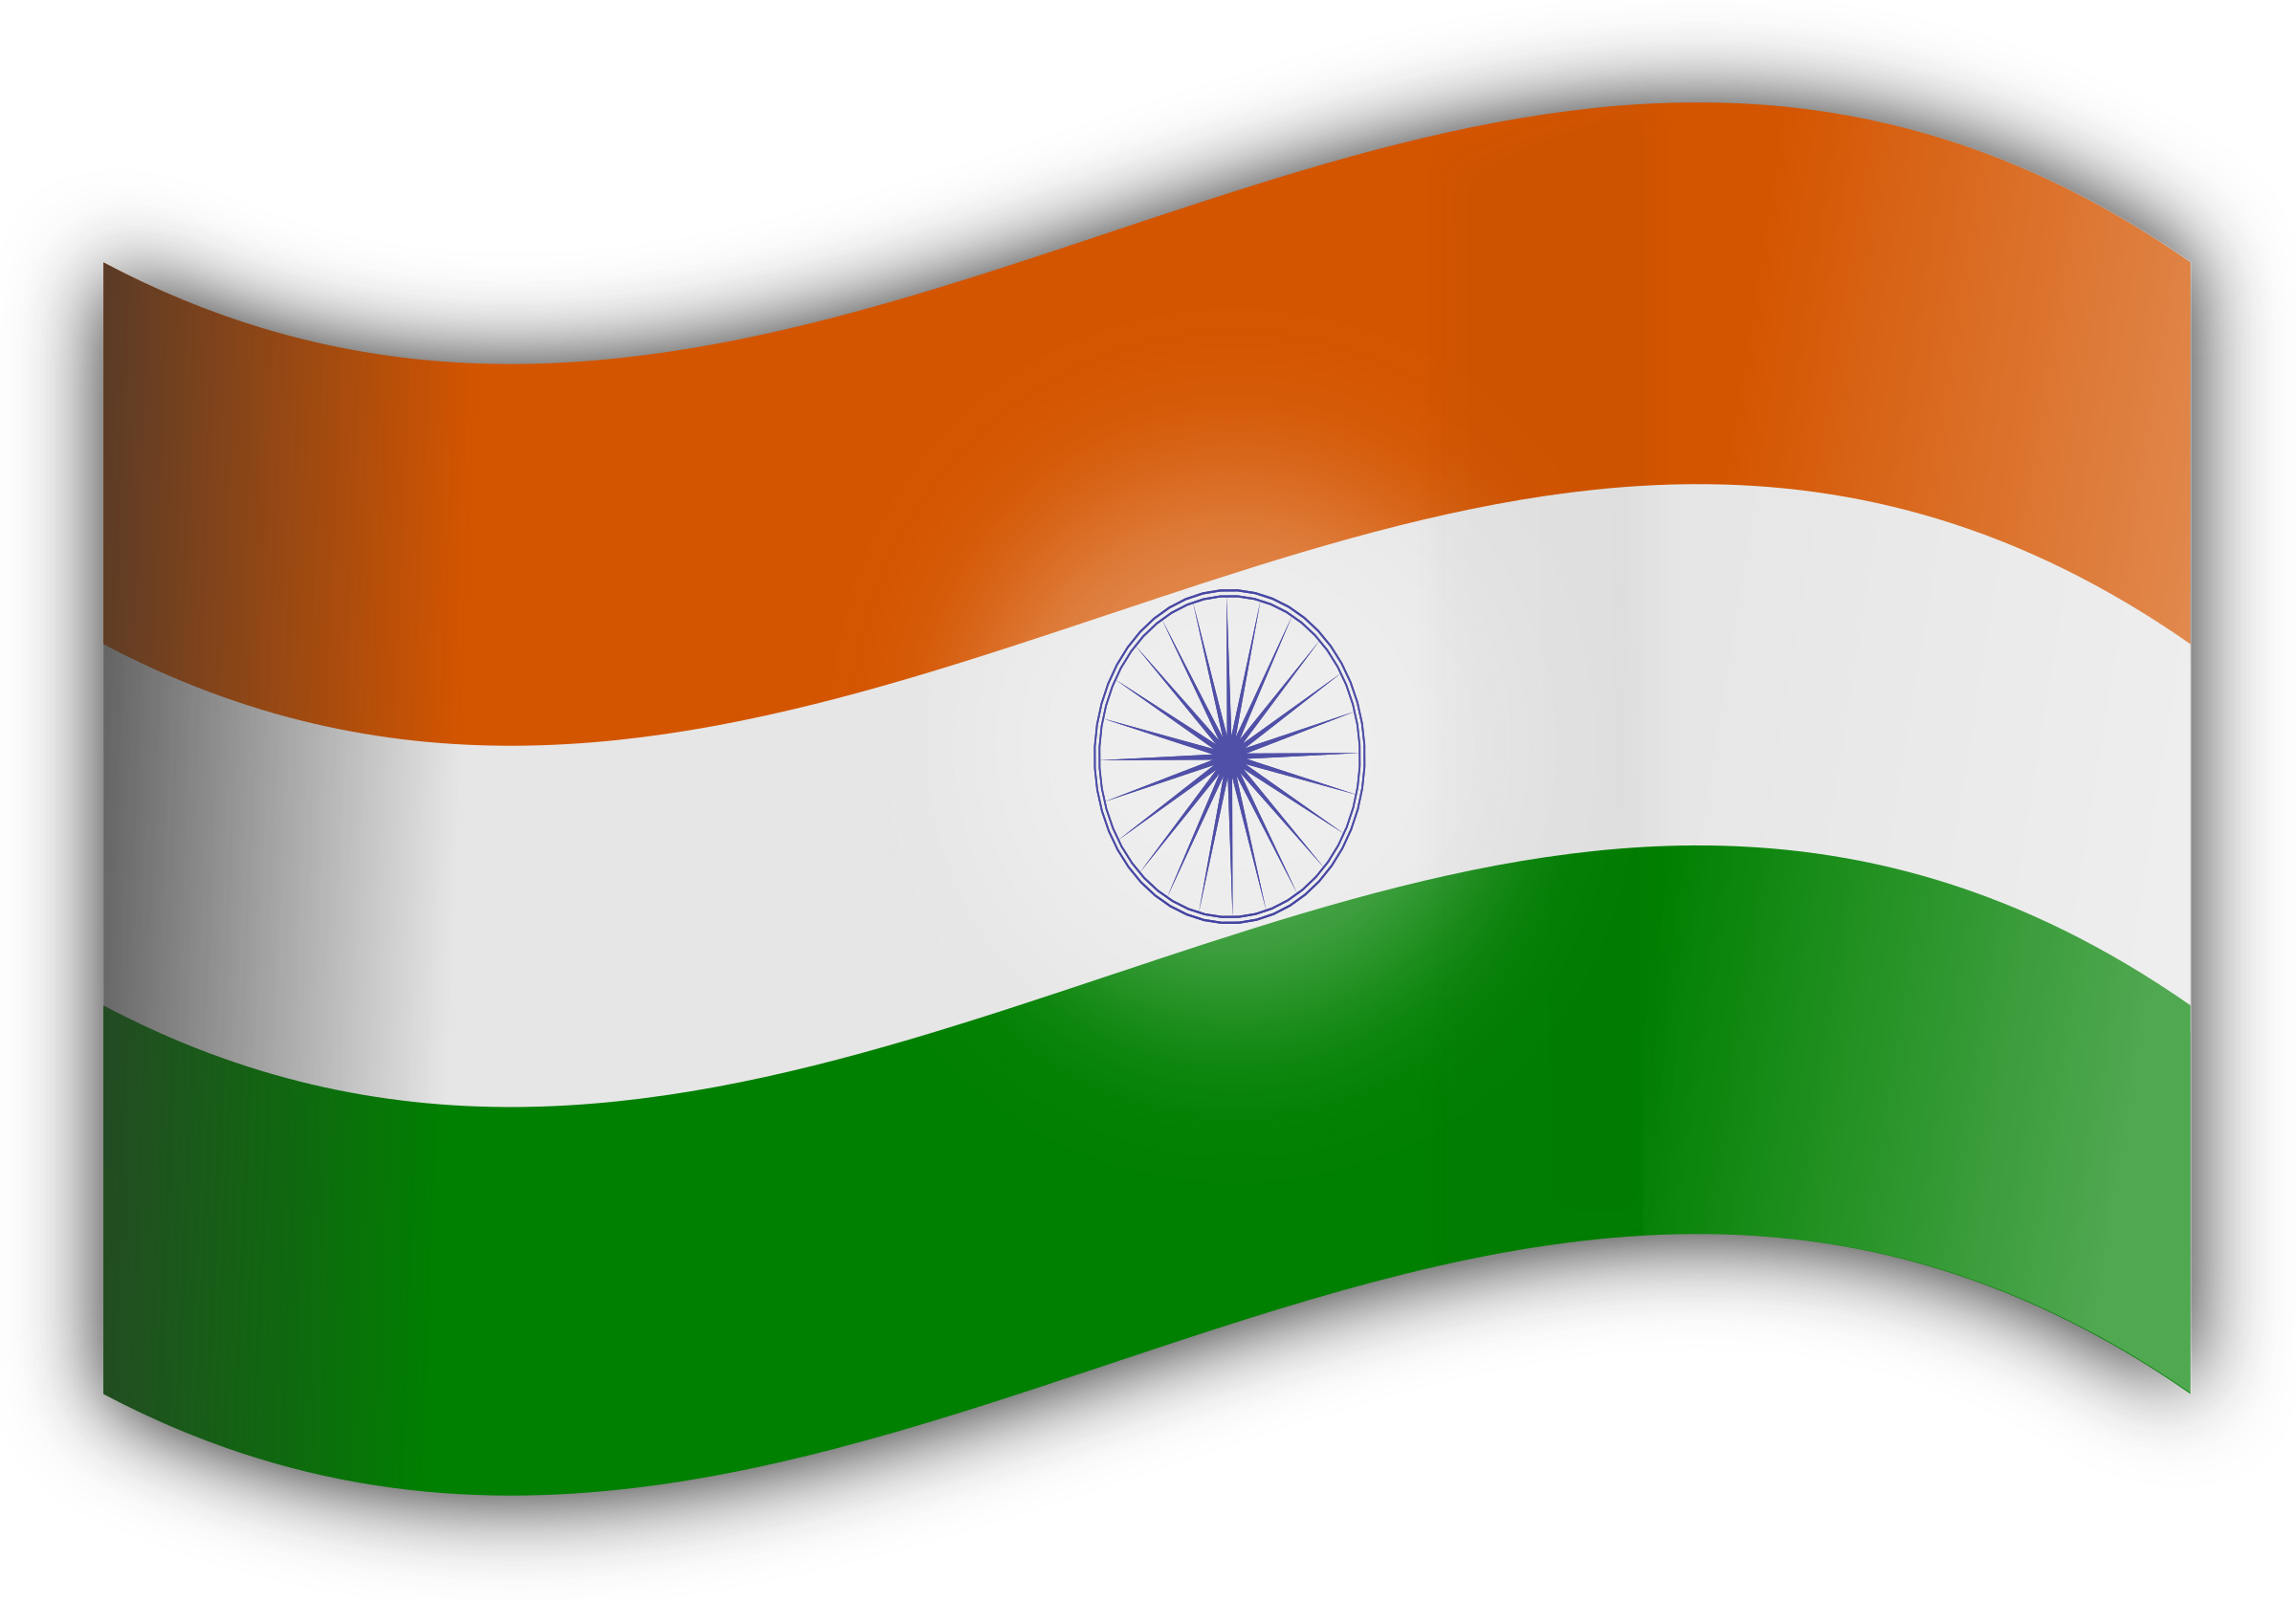 Flag clipart india royalty free library Free Indian Flag Png, Download Free Clip Art, Free Clip Art on ... royalty free library